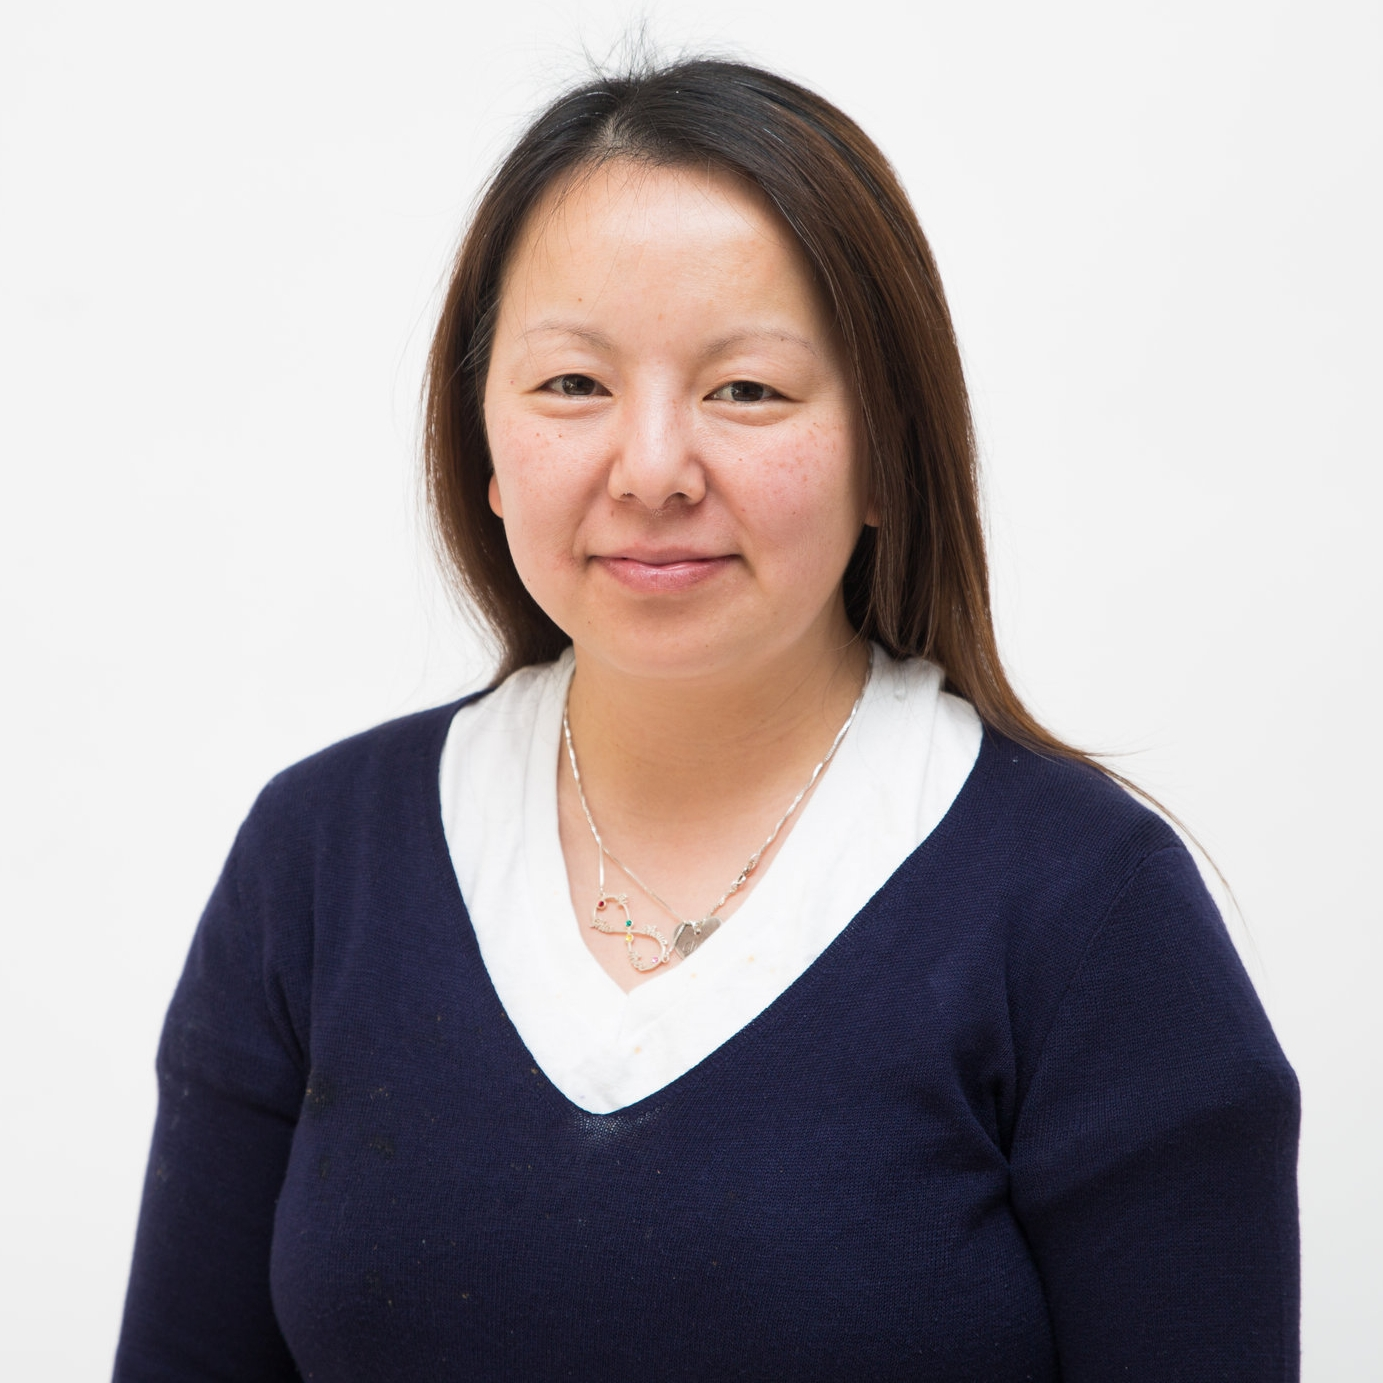 Sai Thao  was one of the original founders of In Progress. She served on the board of directors from 2000 to 2009. She is an accomplished filmmaker, teaching artist and community leader. She returned to the board in in 2014.  2nd term expires 12/31/19  first elected 2014